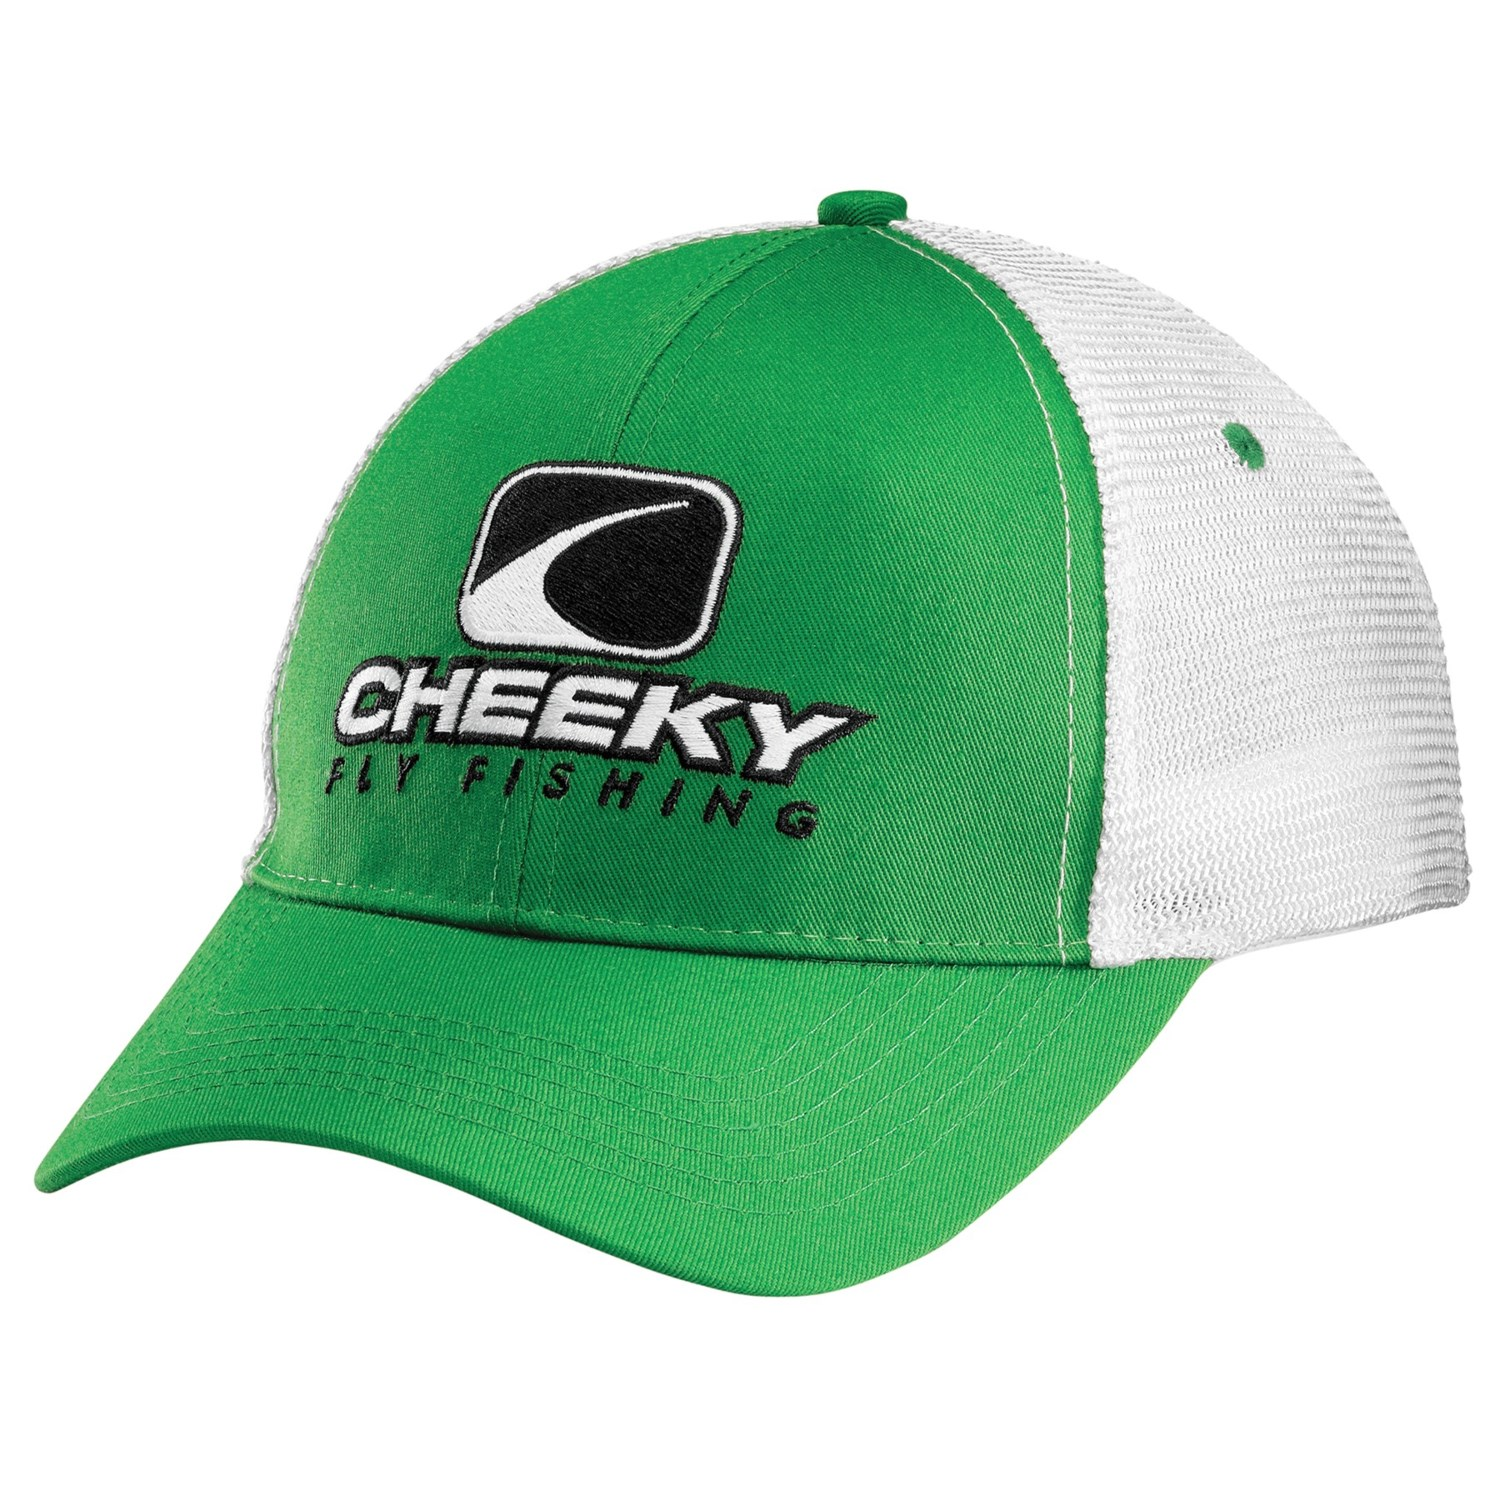 Cheeky fly fishing pro cap save 40 for Cheeky fly fishing